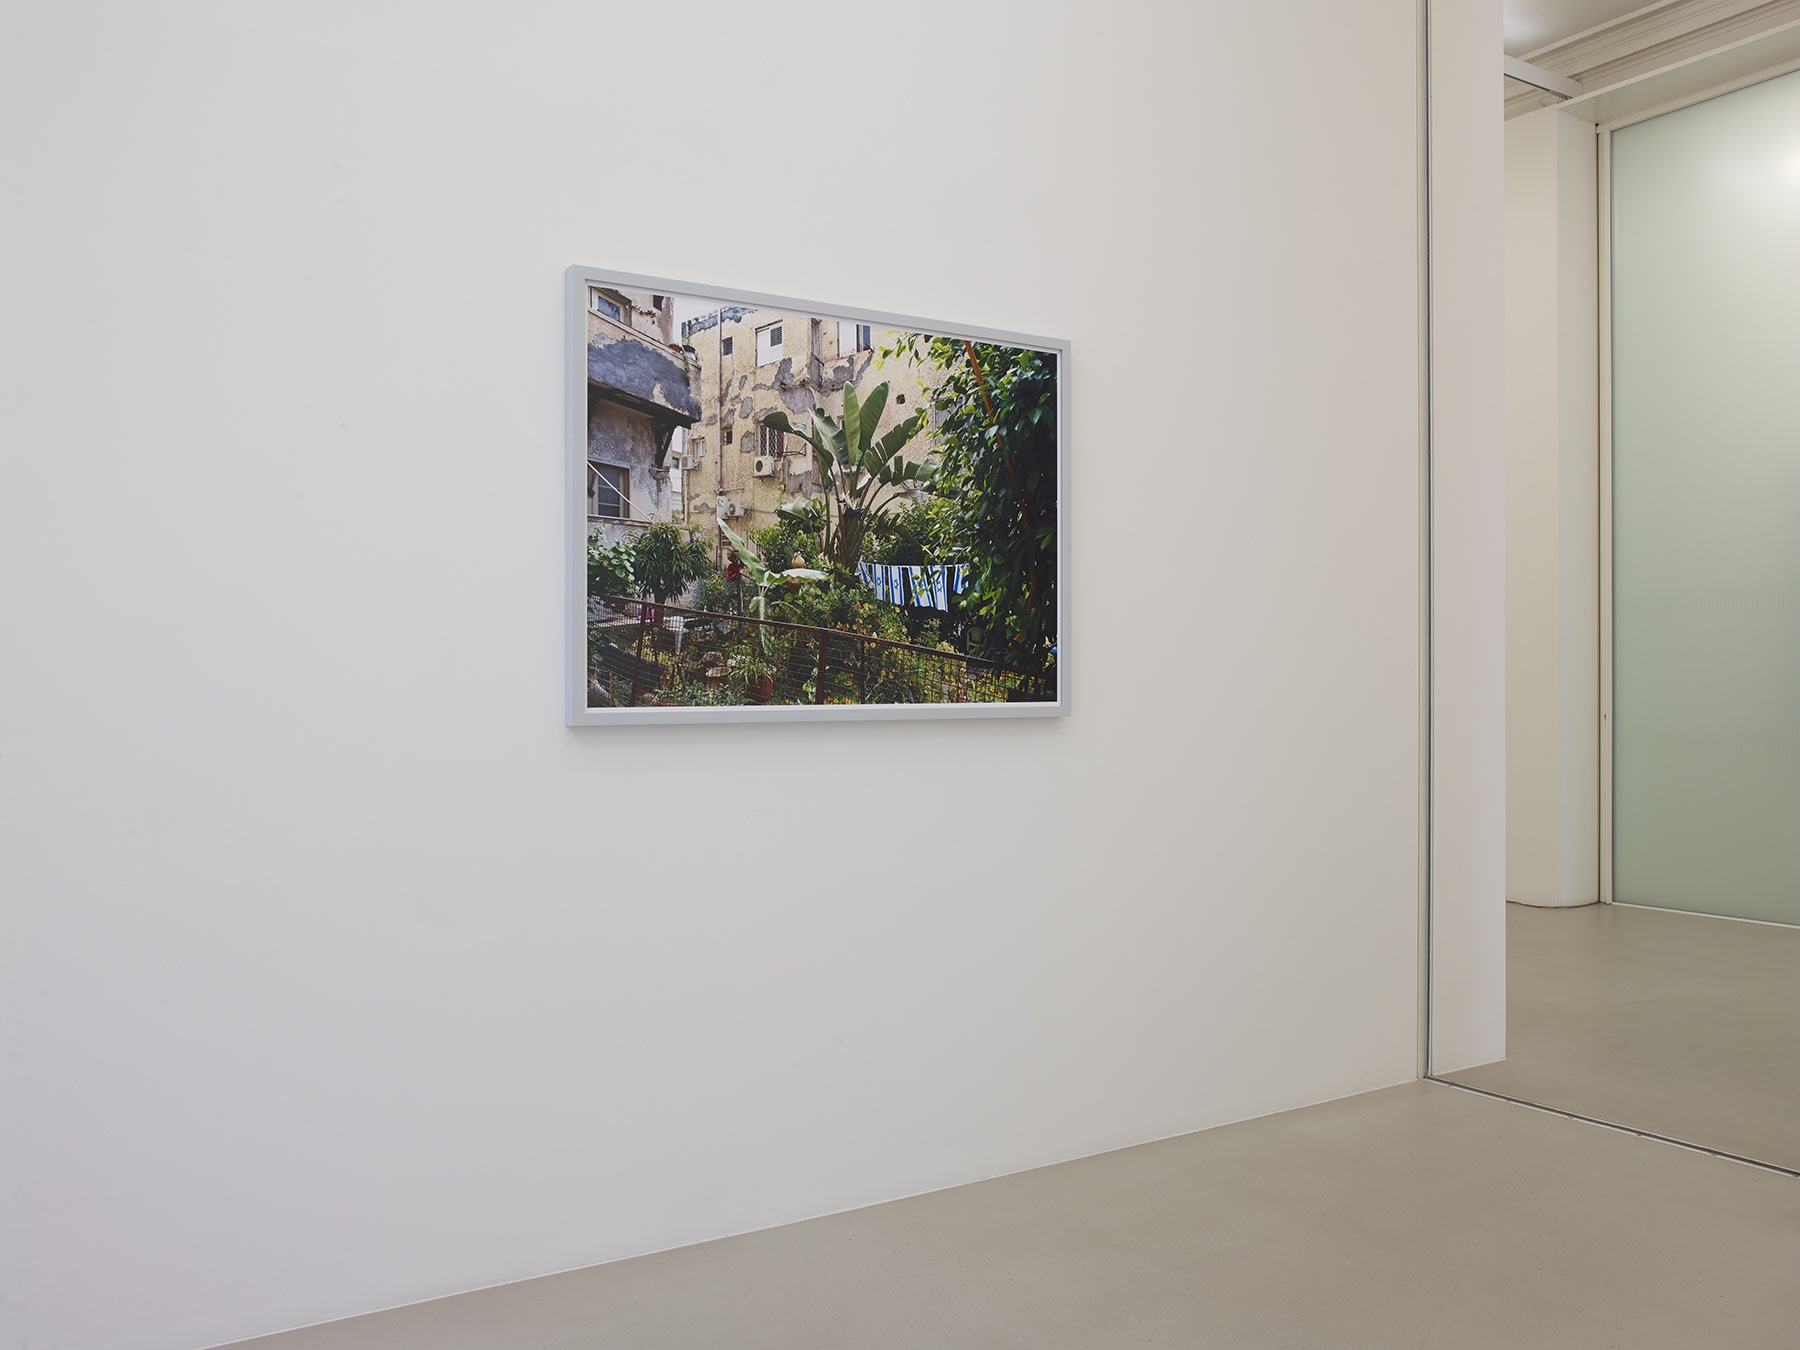 On a white wall, a photograph of a large plant in a courtyard in front of a building hangs.